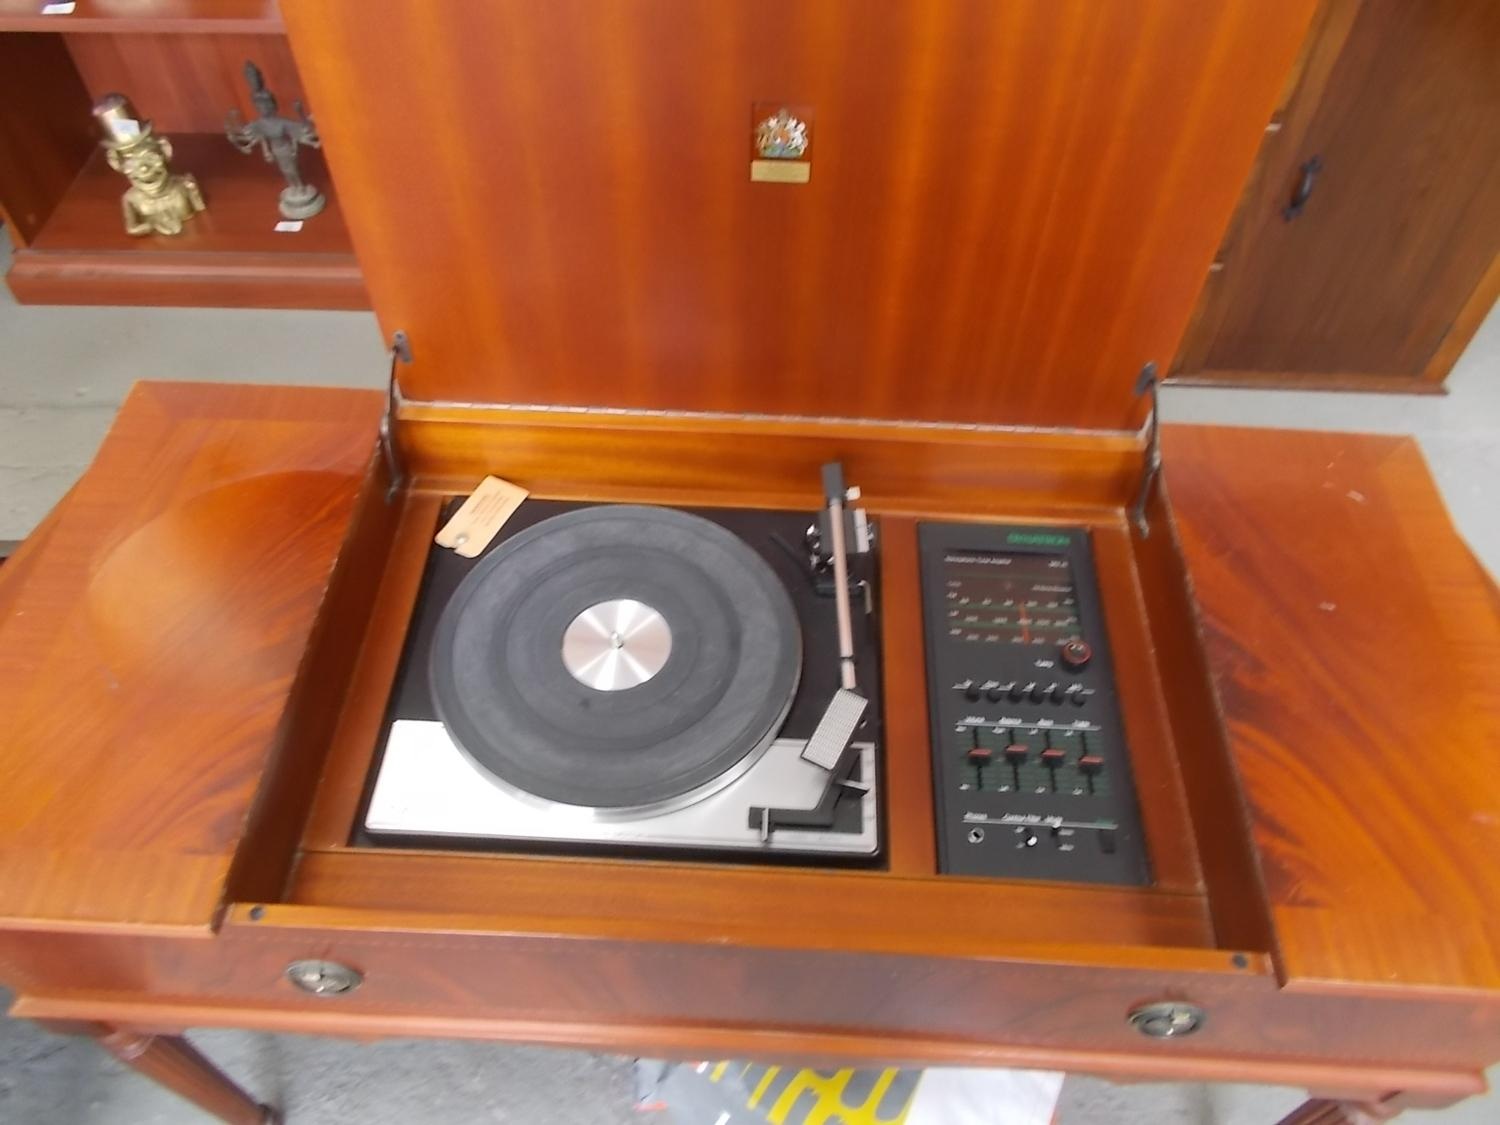 Vintage Garrard radiogram, Garrard deck SP25 MkIV, Dynatron radio. Feathered mahogany case with integrated speakers, lift up lid.  image